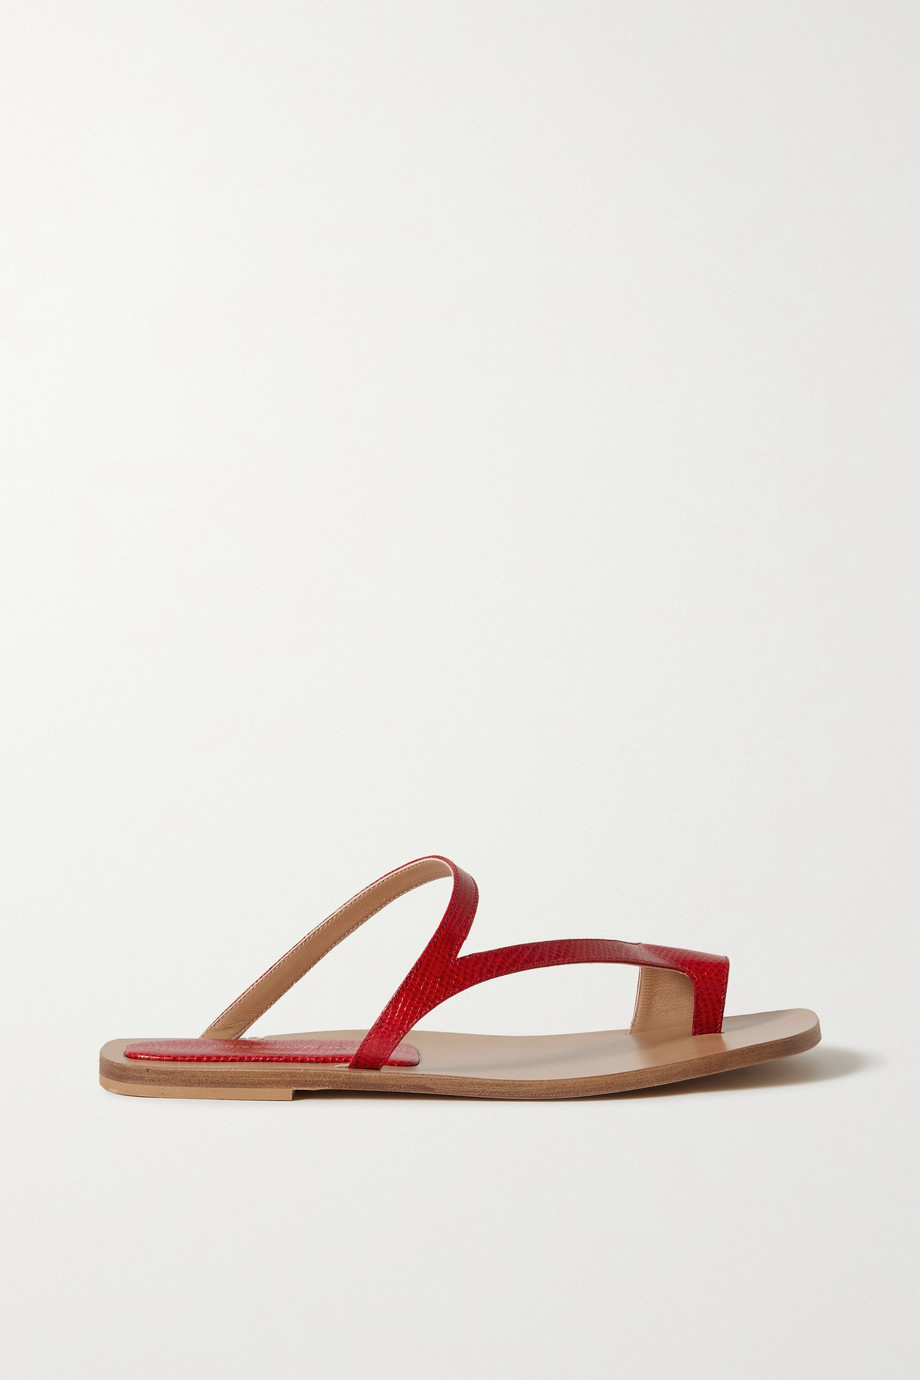 DRIES VAN NOTEN Donna lizard-effect leather sandals